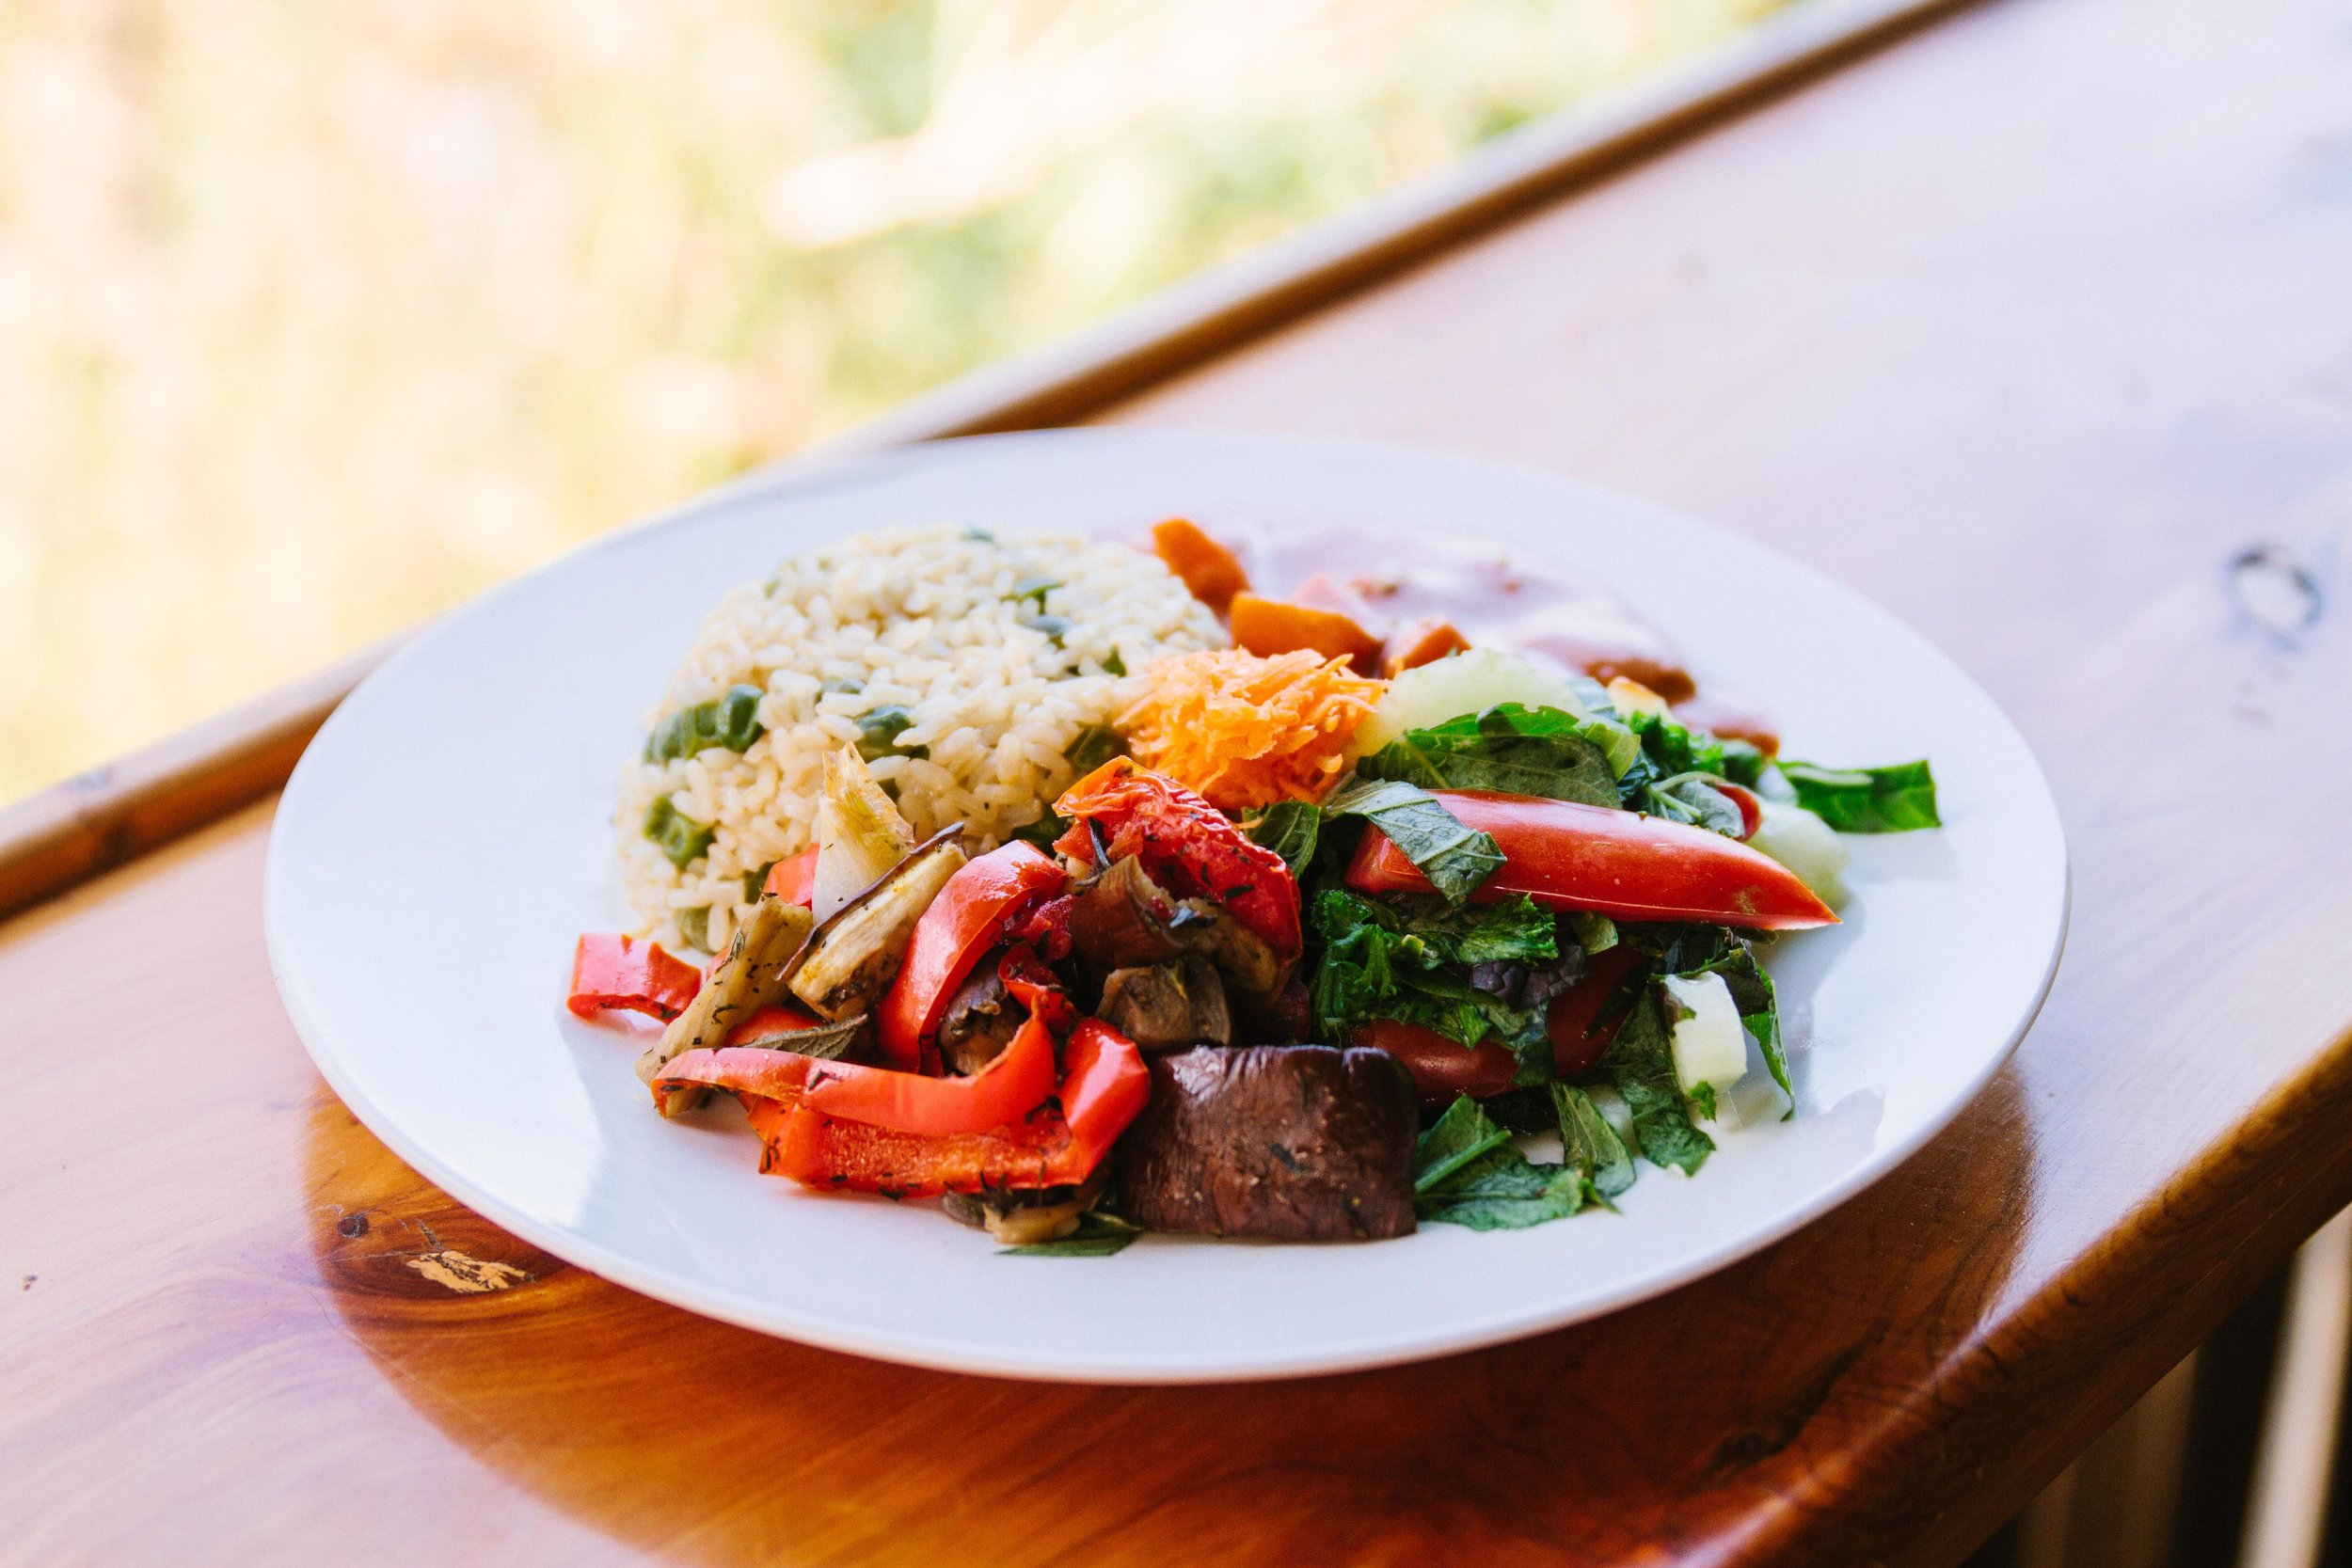 Plate with sauteed vegetables, salad, and grains. Healthy and delicious meals are served at the Discovering Birth Midwifery Retreat July 14-27, 2019 at the Bambu Guest House,Lake Atitlan, Guatemala